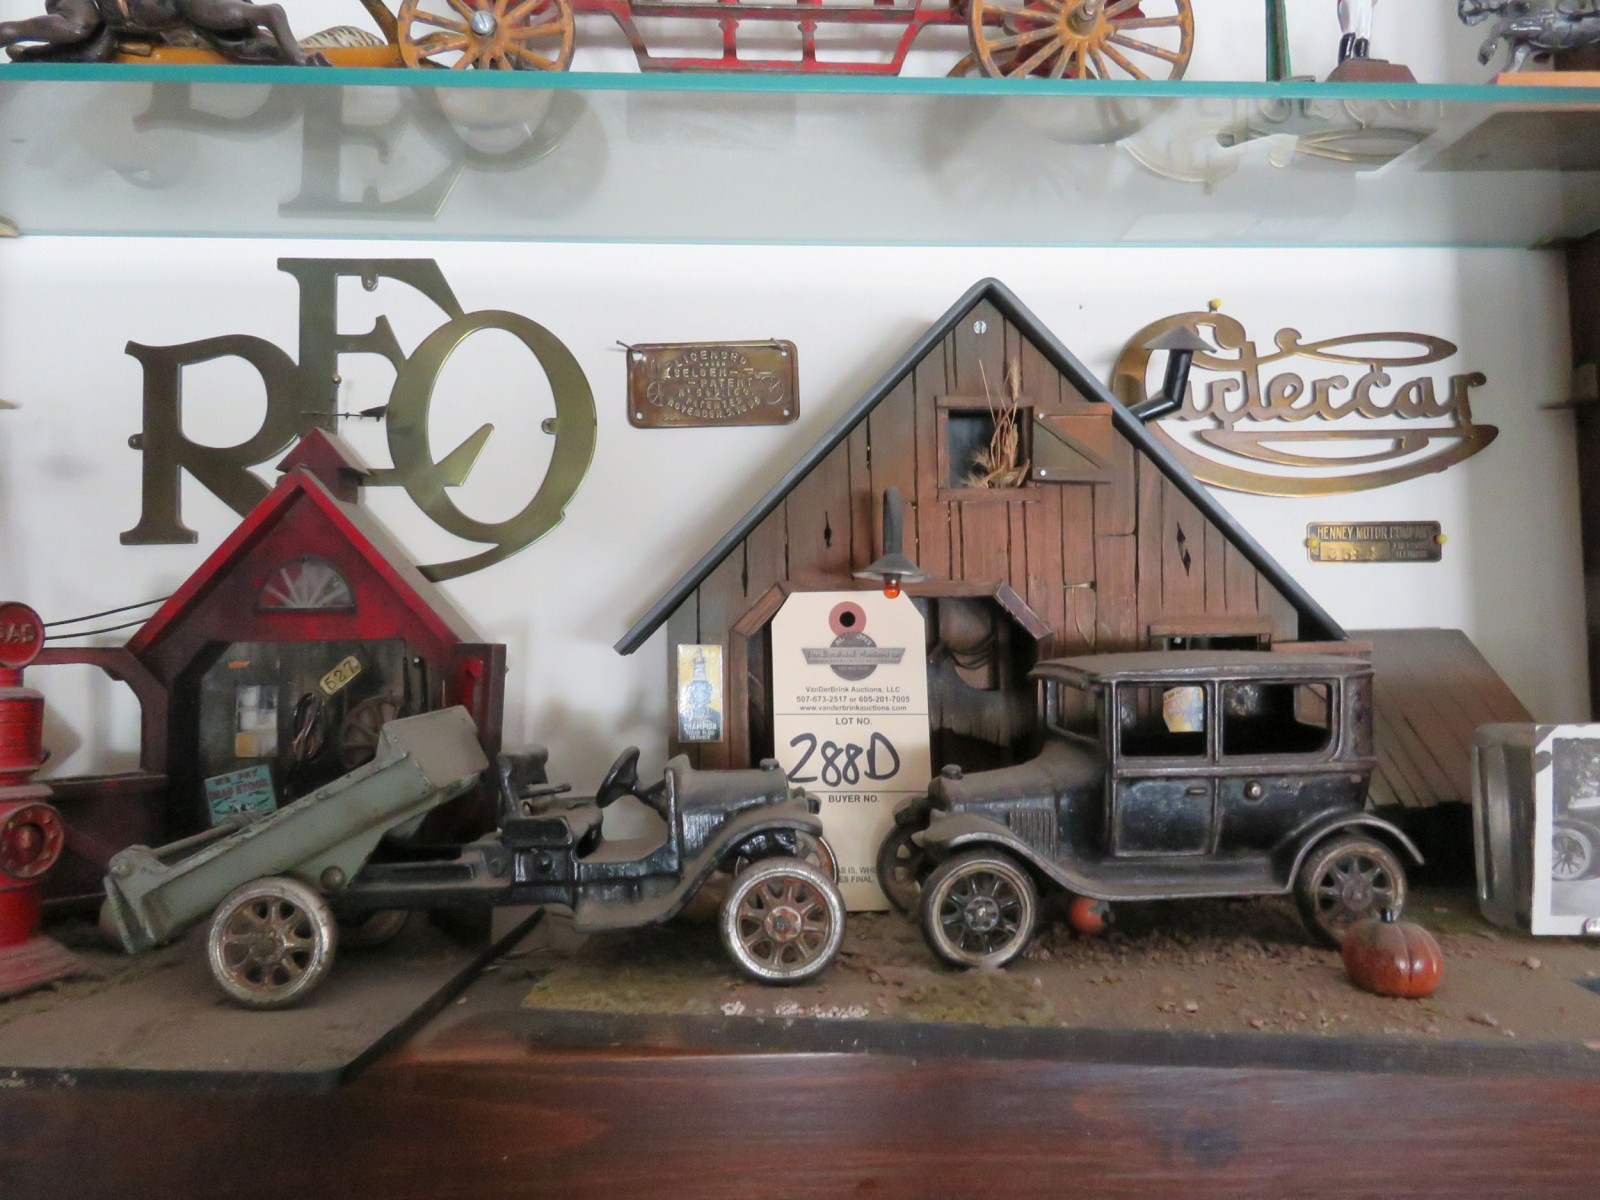 Repair Shop Diorama with Vintage Cast Iron Trucks - Image 1